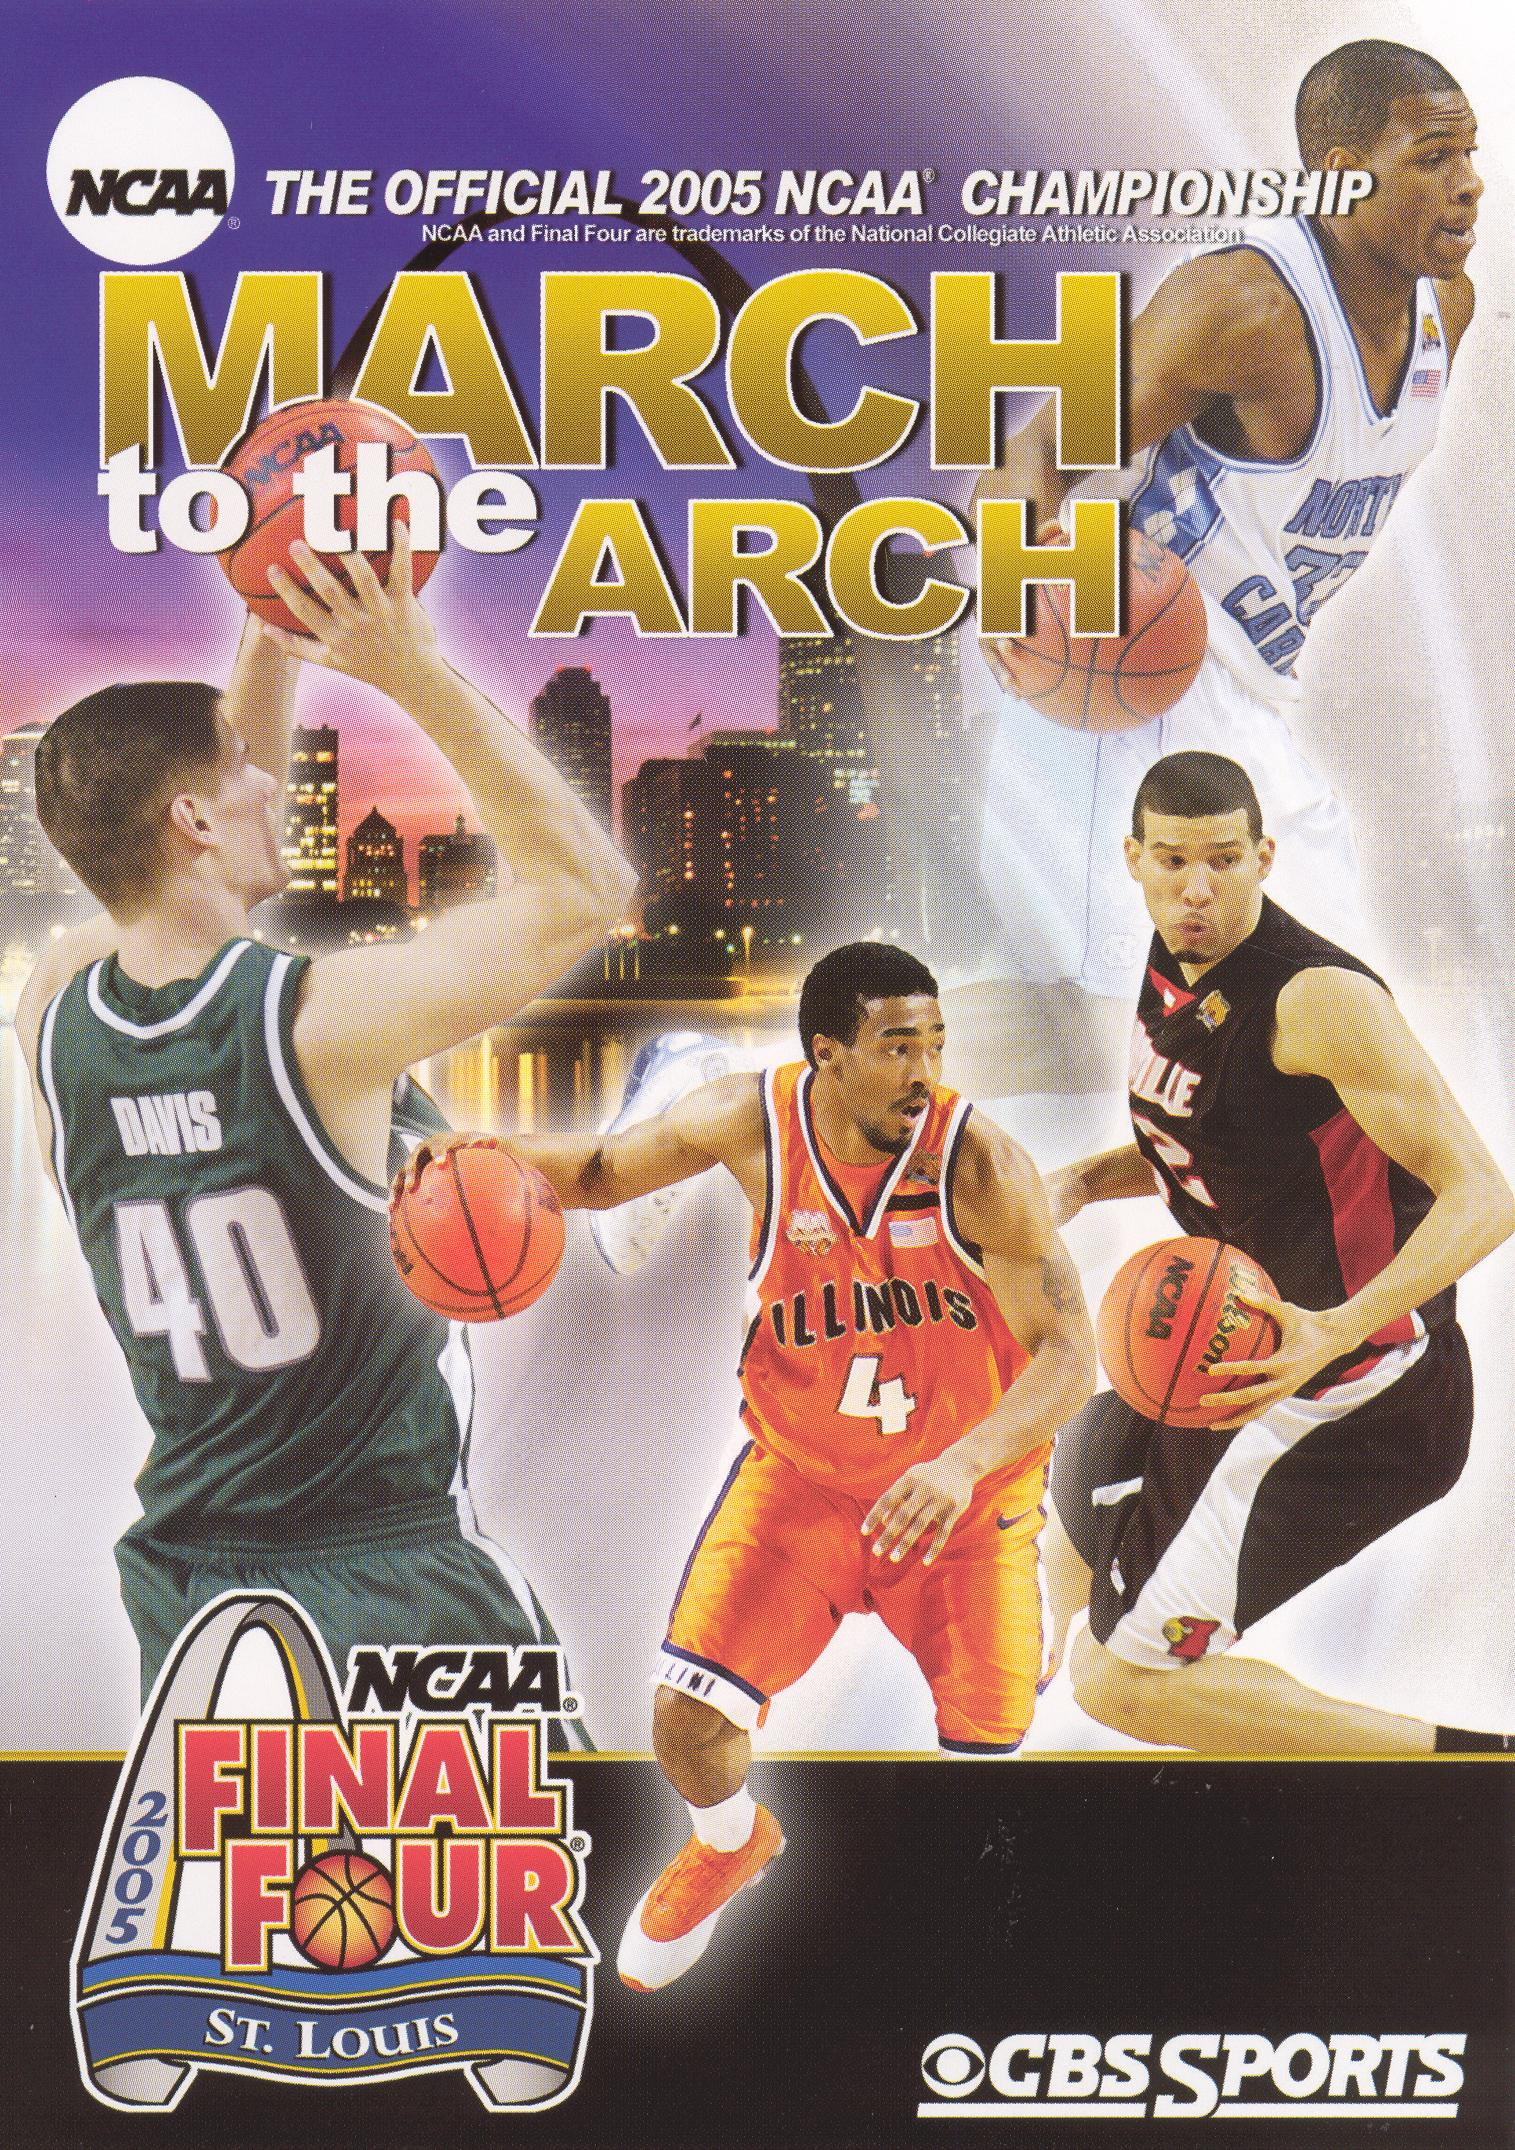 The Official 2005 NCAA Final Four